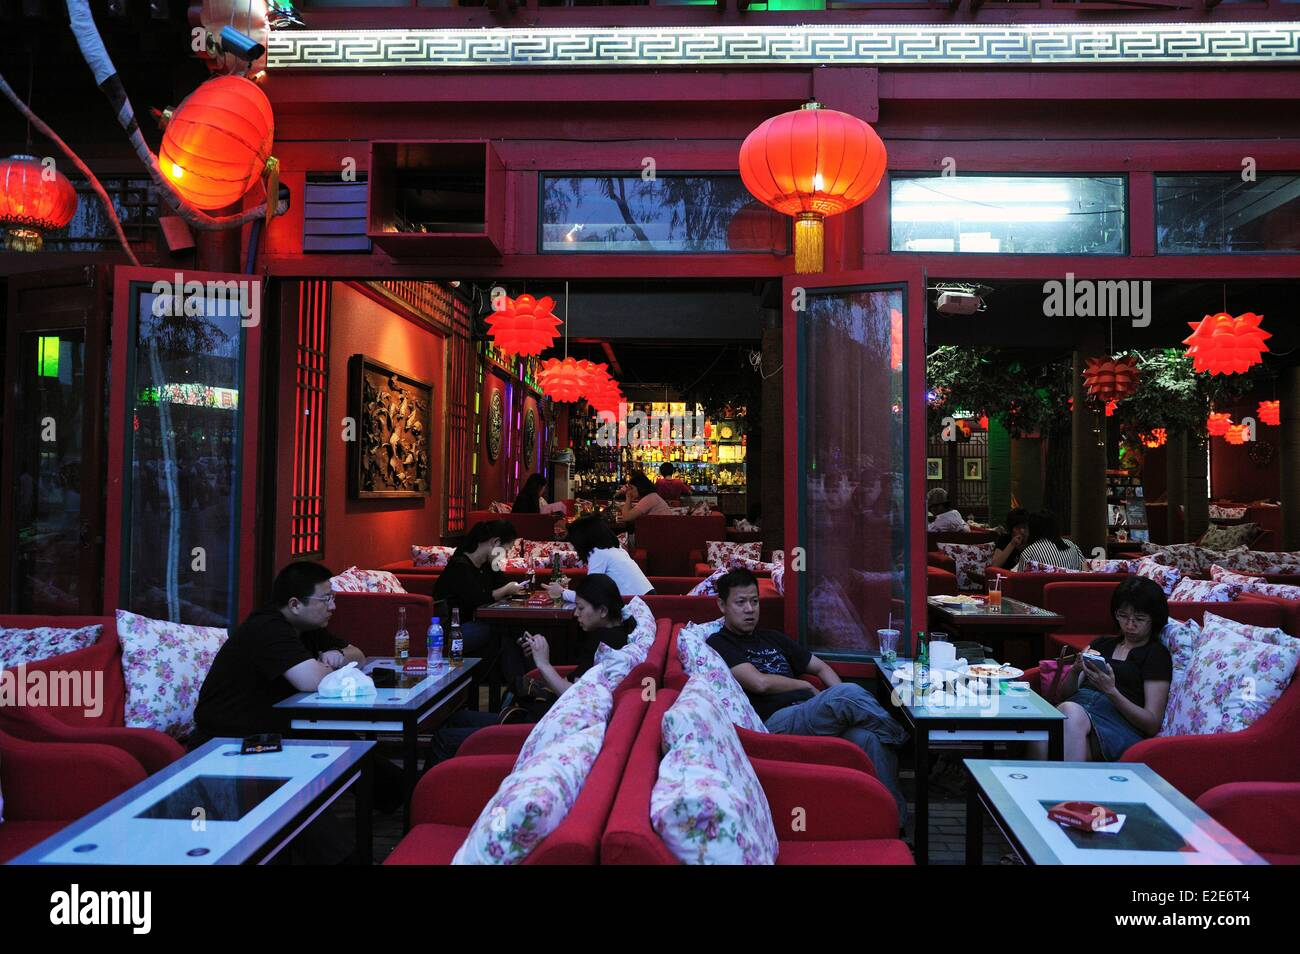 China, Beijing, Xicheng district, nightlife around the Silver bar bridge between the Houhai lake and the Qianhai - Stock Image